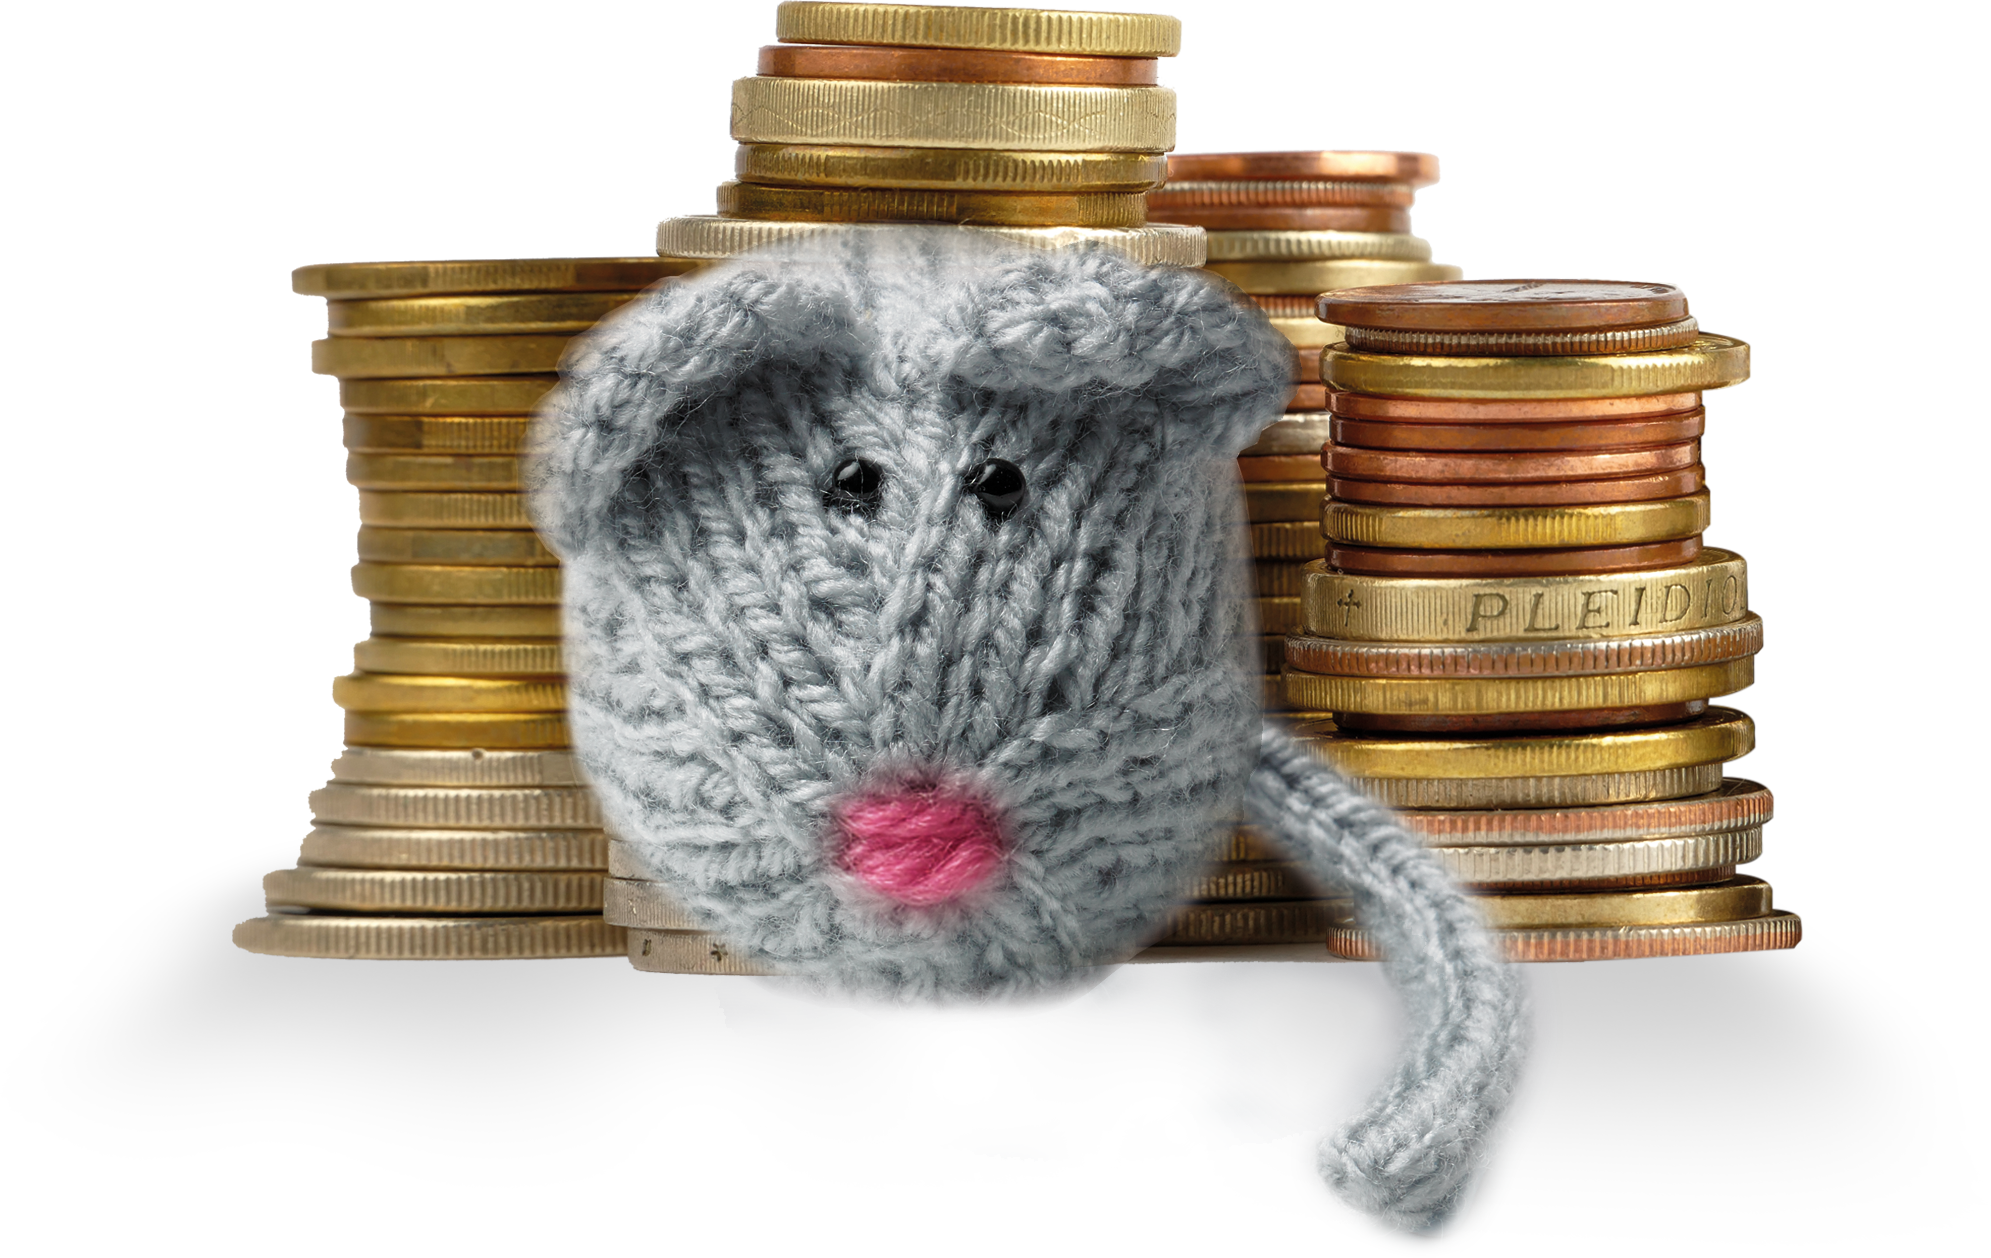 mouse coins